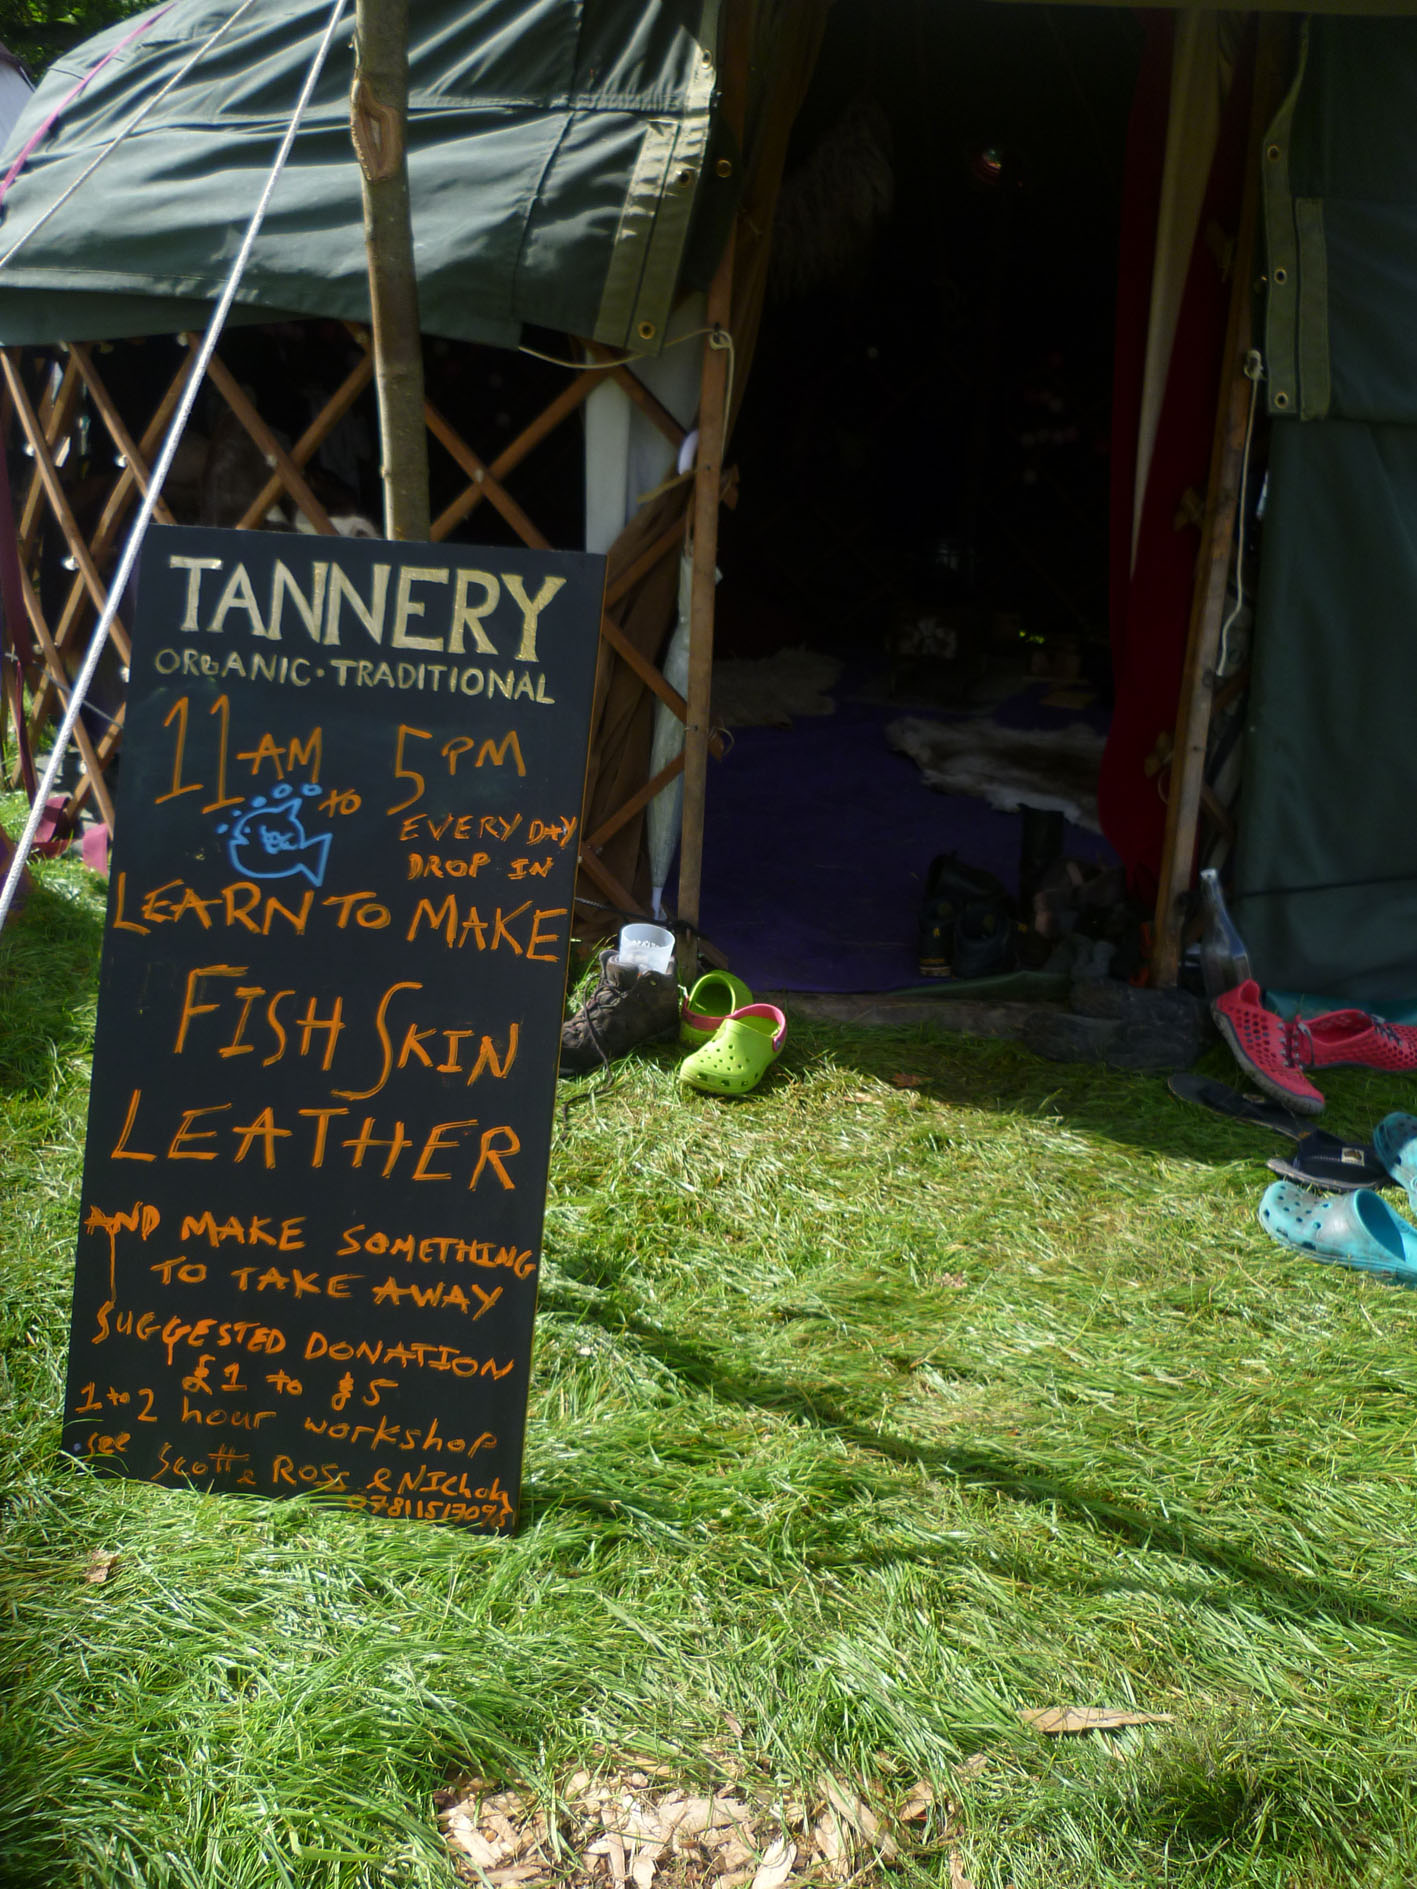 Mobile tannery workshop sign